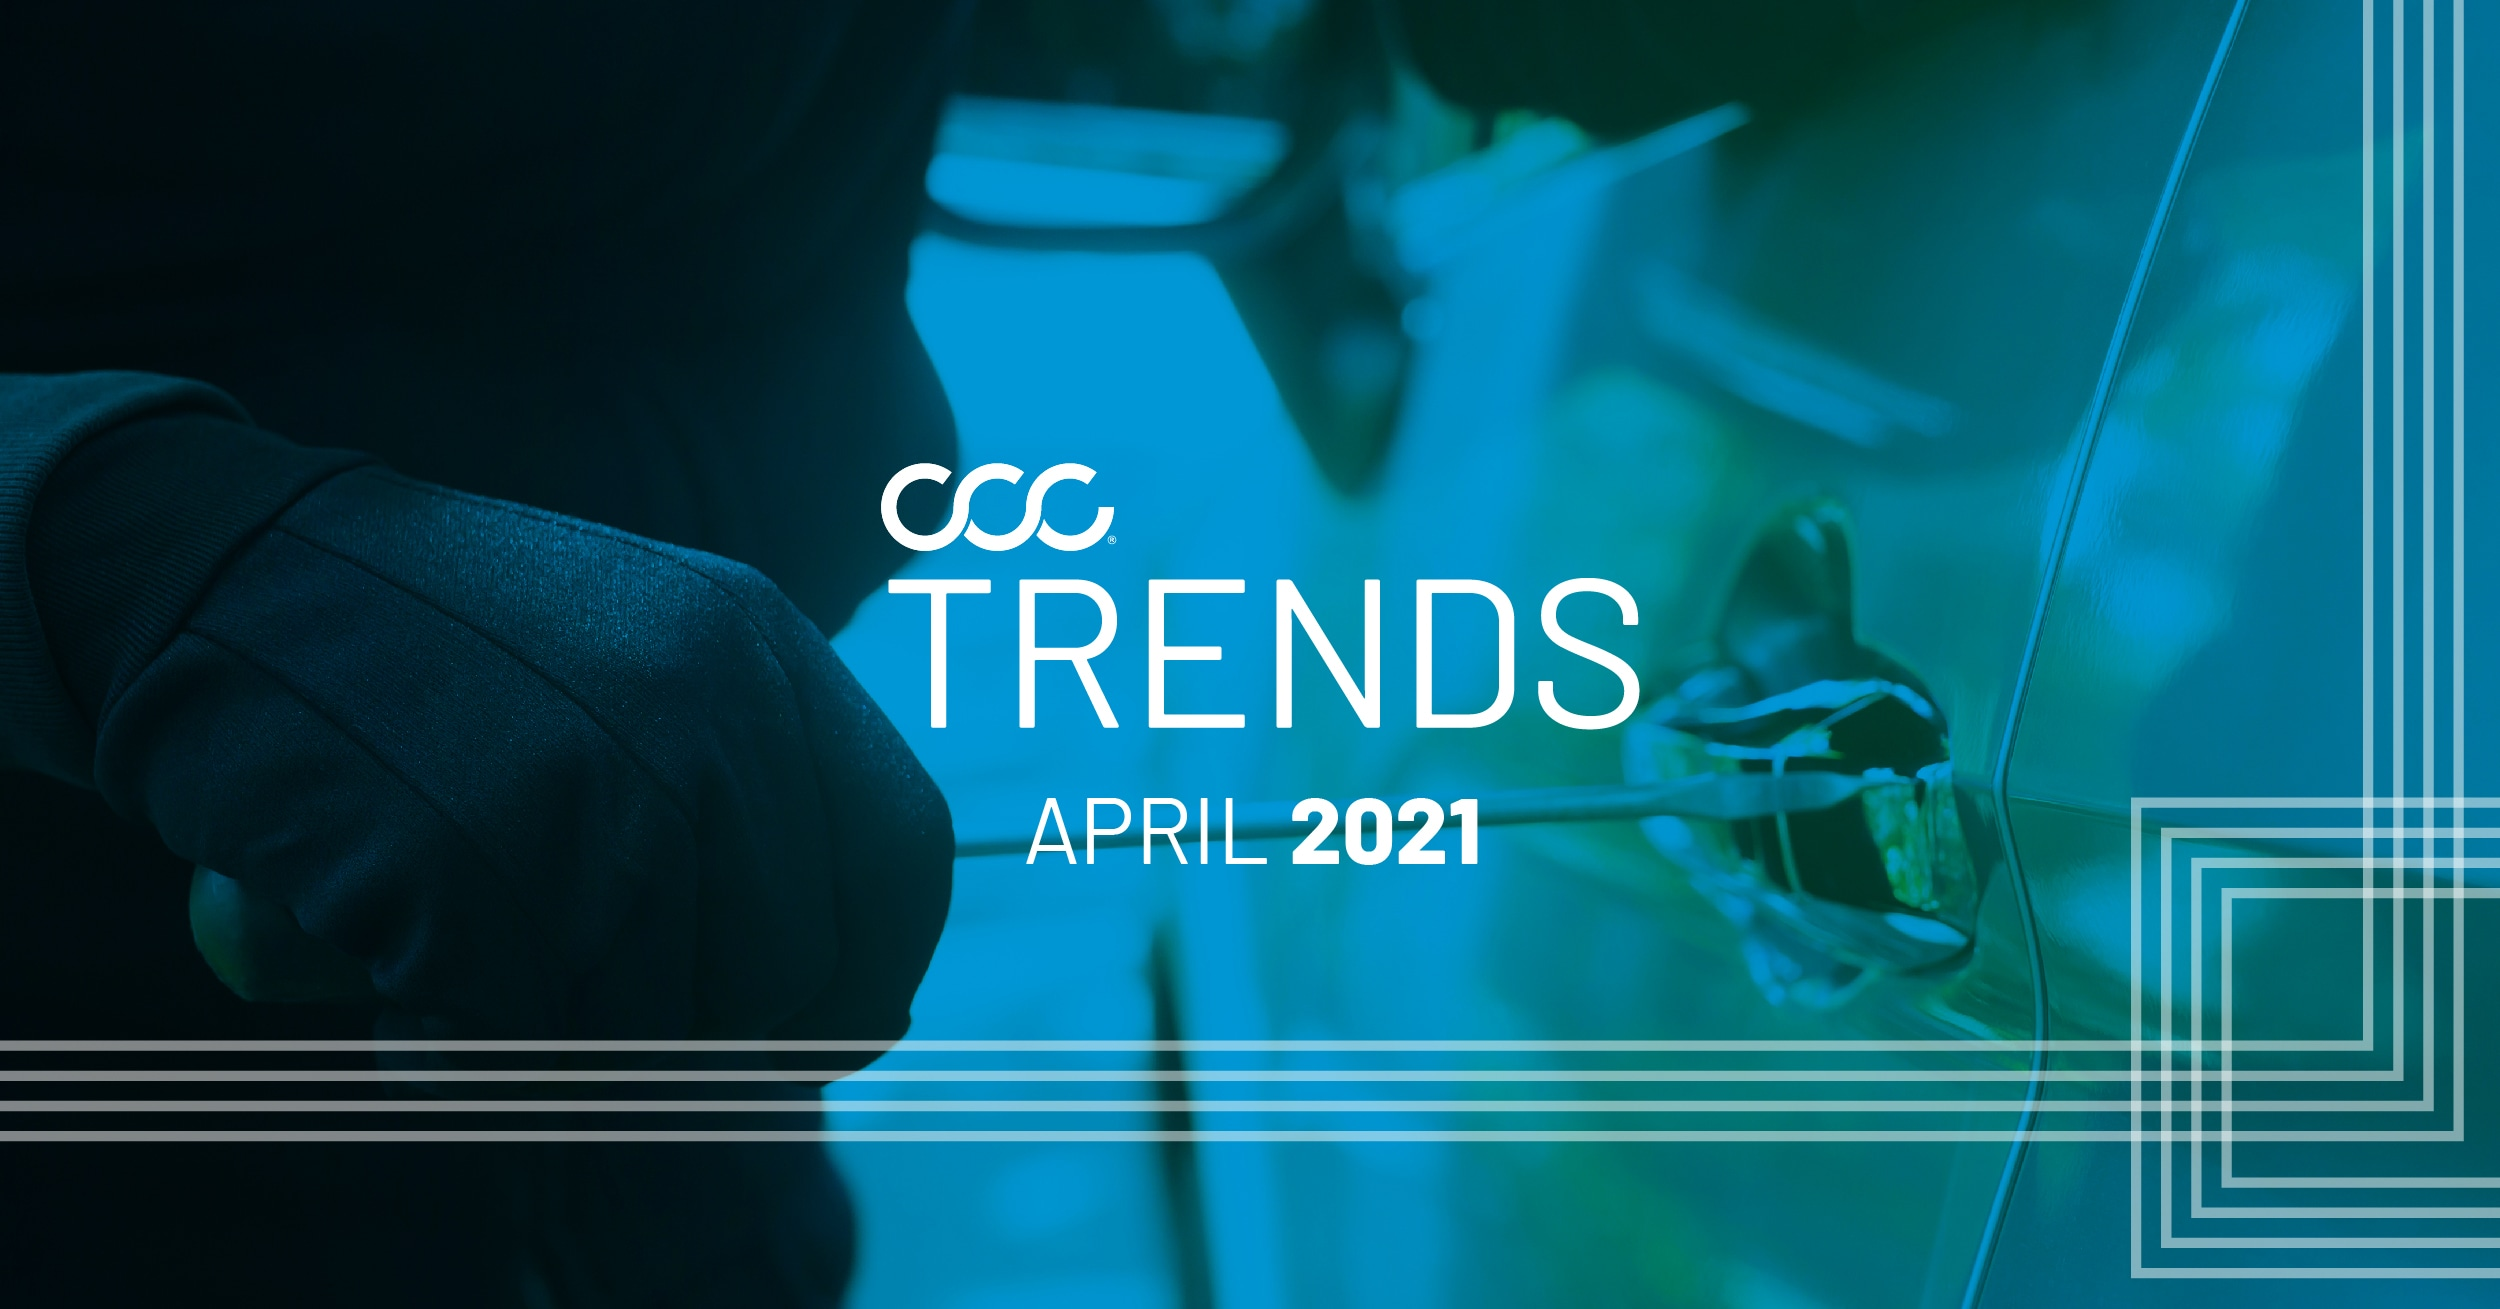 CCC Trends: A Convergence of Trends Driving Vehicle Theft